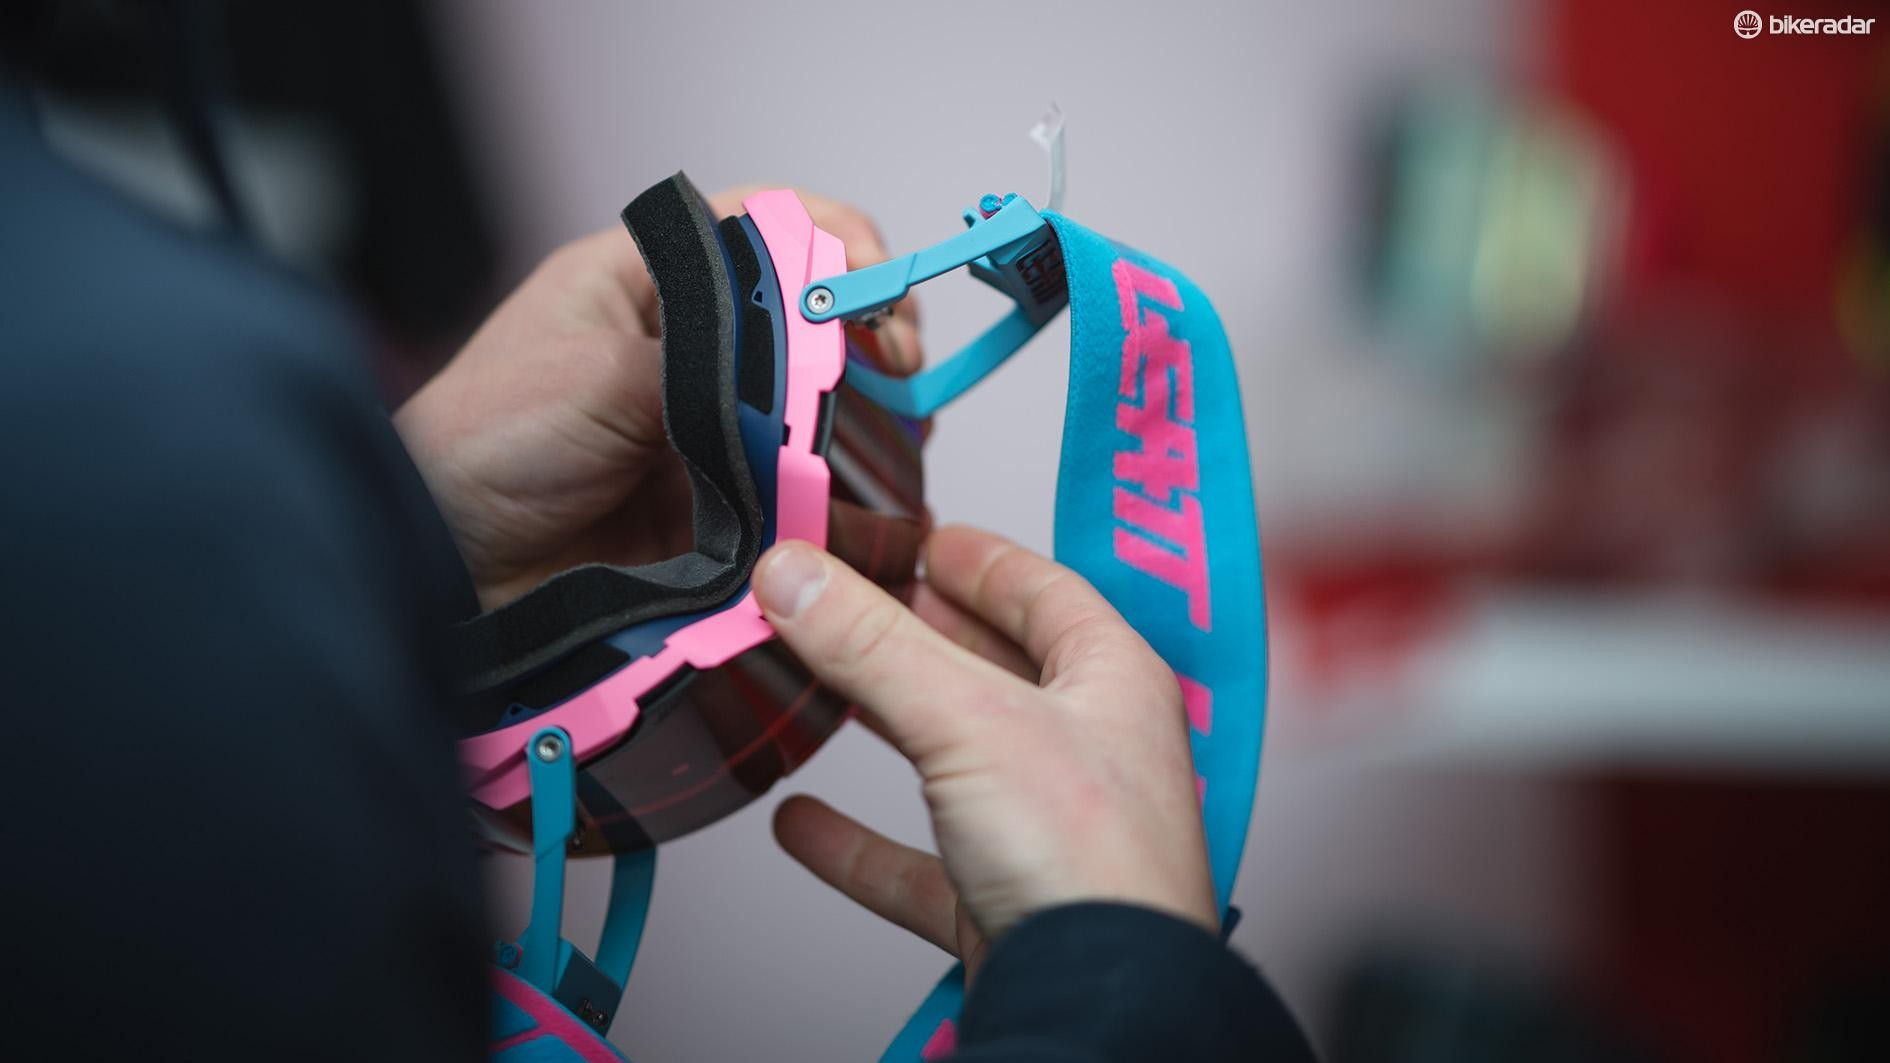 Unhook the nose clip and the lens will be free from the goggle's frame